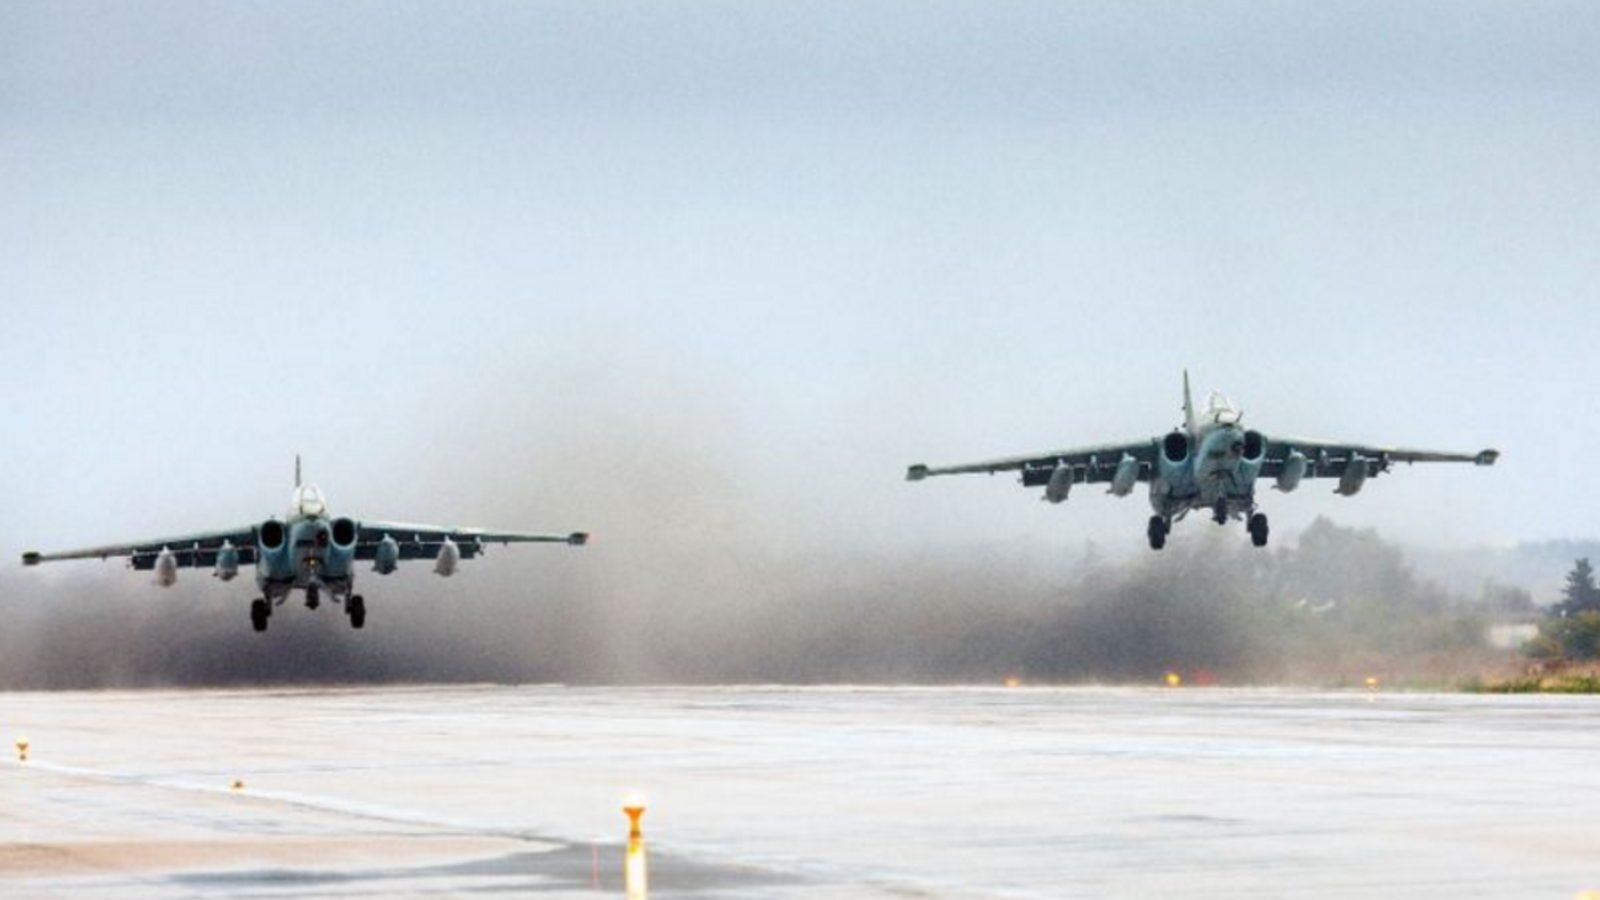 Russian fighter jets take off from the Hmeimim military base in the Latakia province of Syria (AFP Photo/Vadim Grishankin)